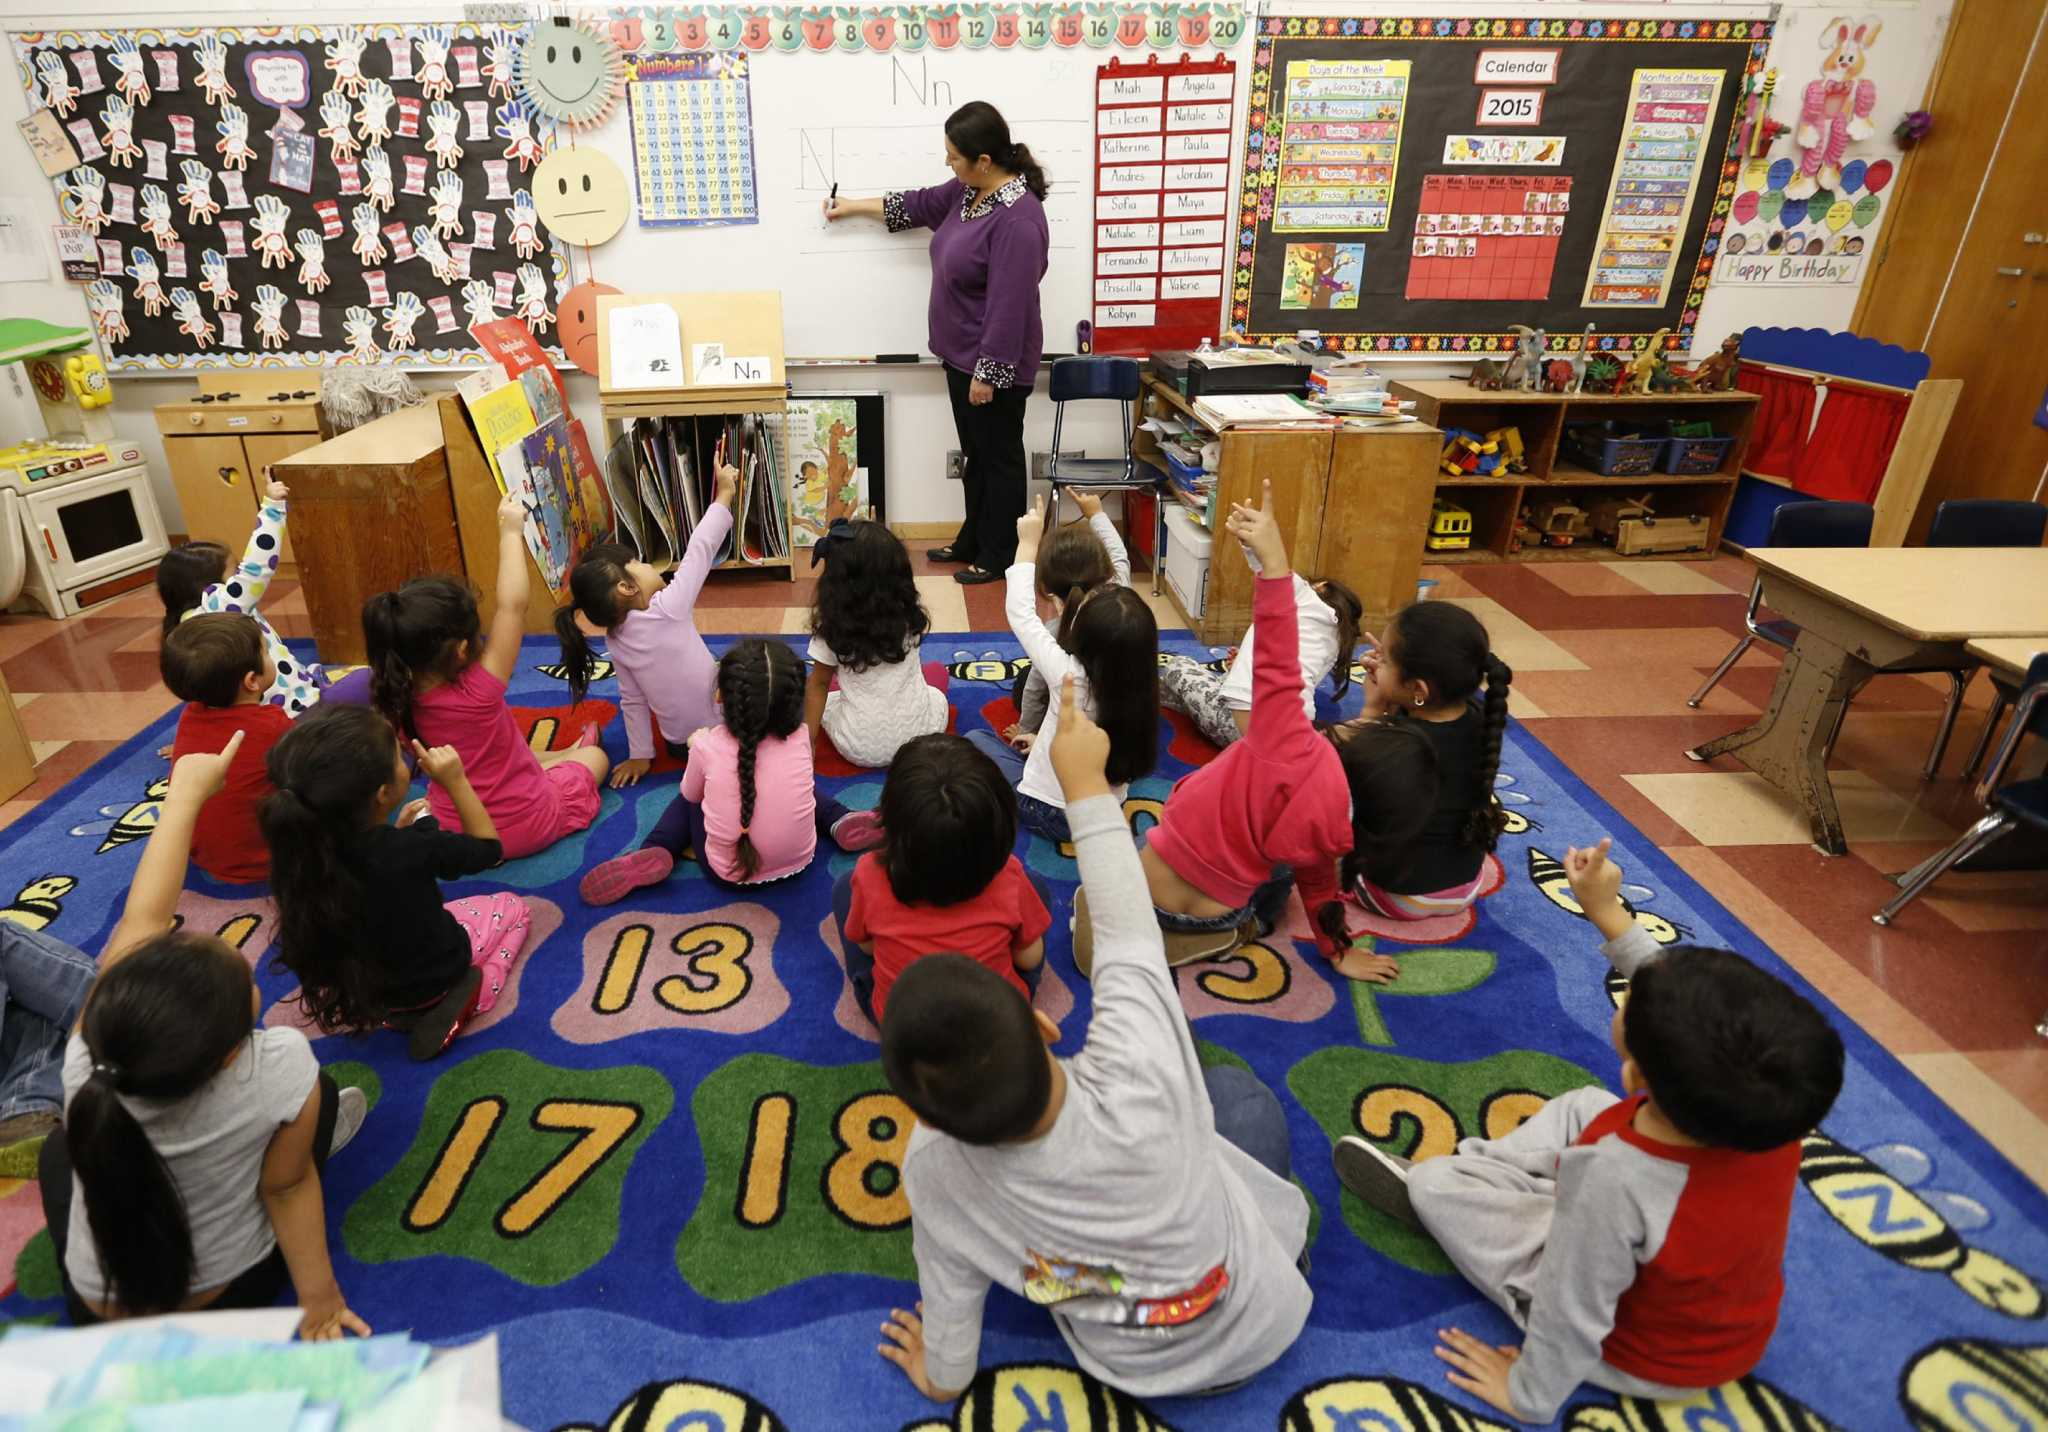 At Risk Children Need More Than Pre K